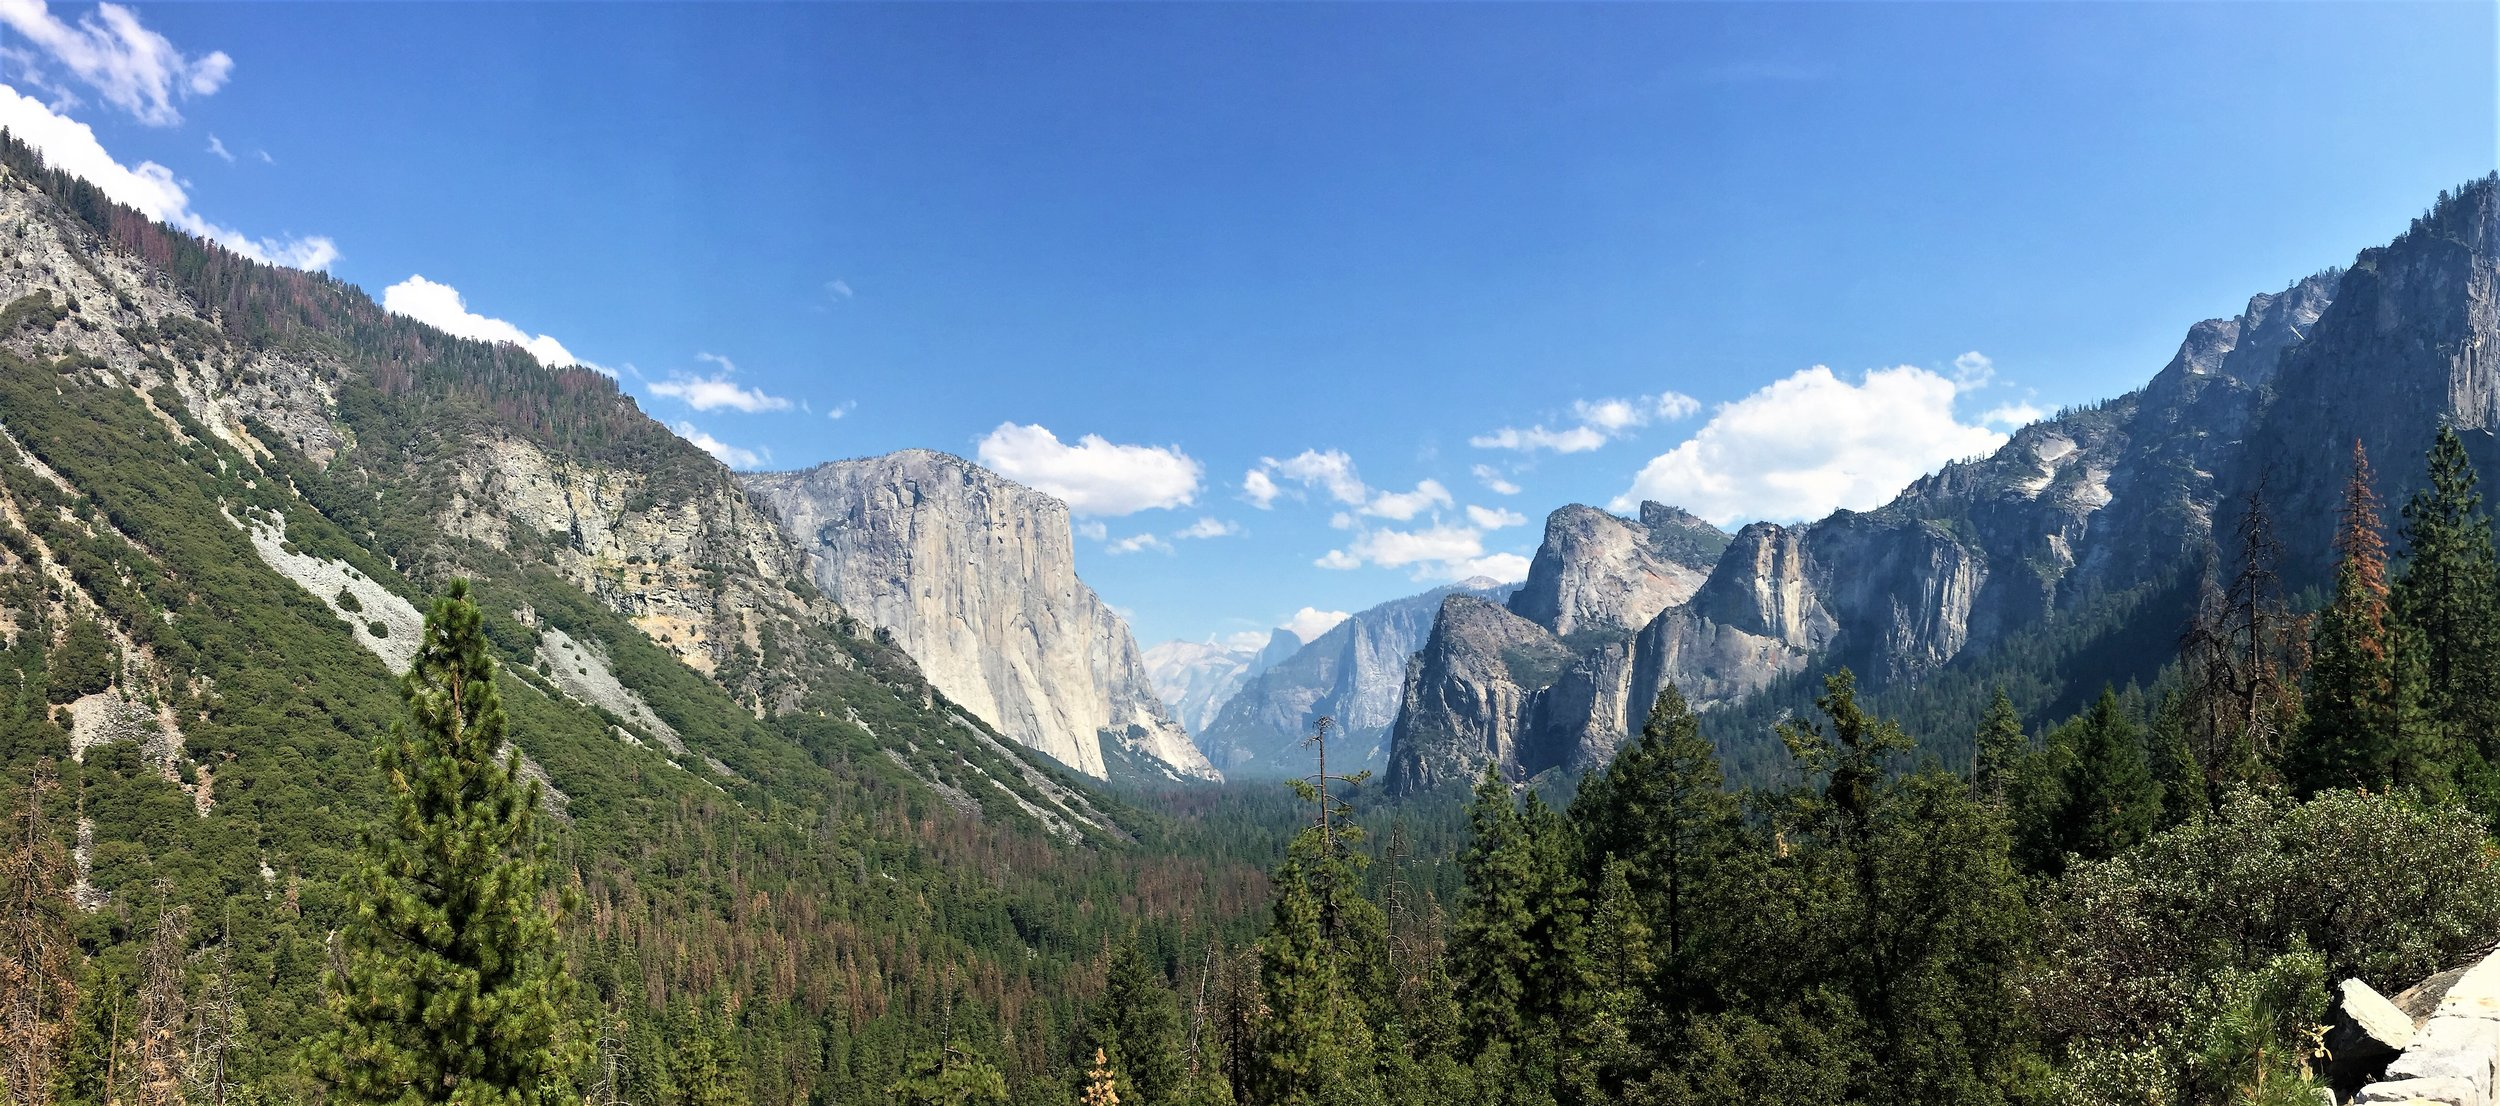 Tunnel View, Yosemite NP